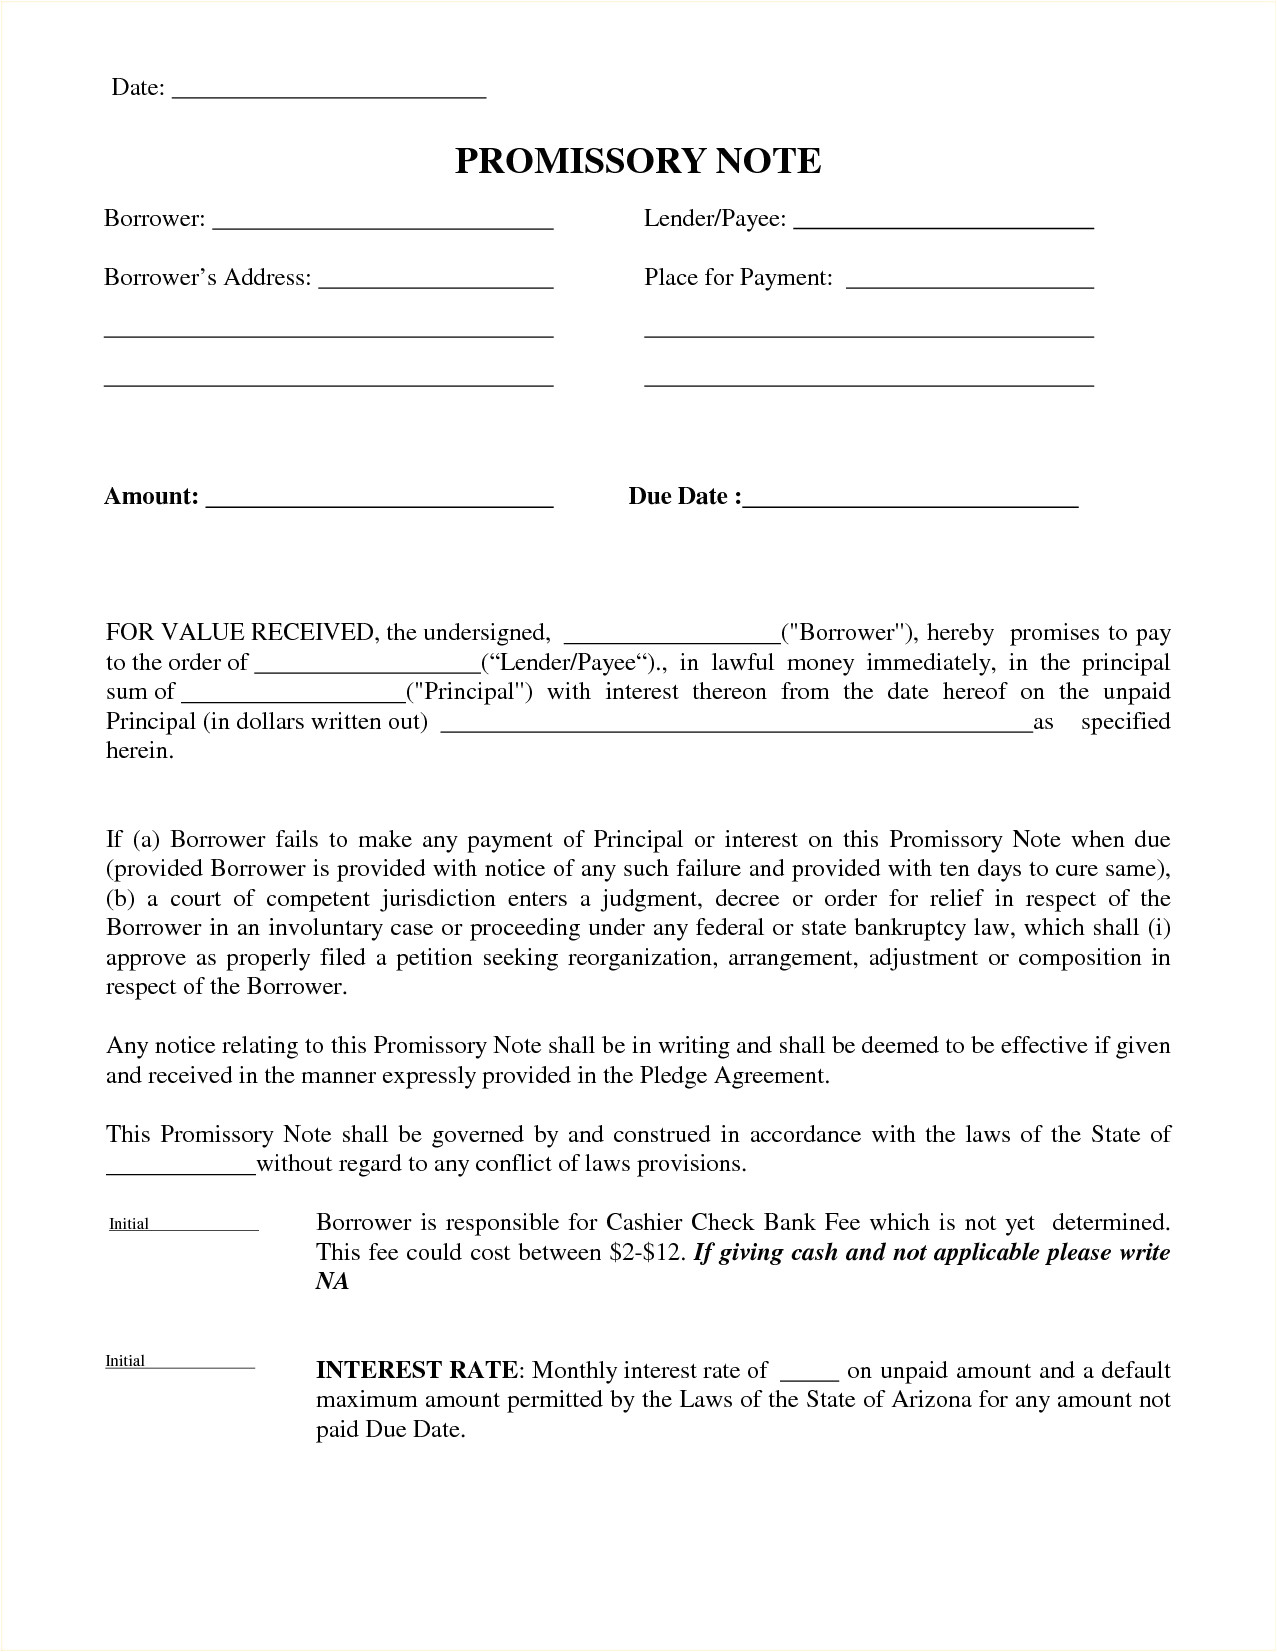 93062 agreement to pay back money